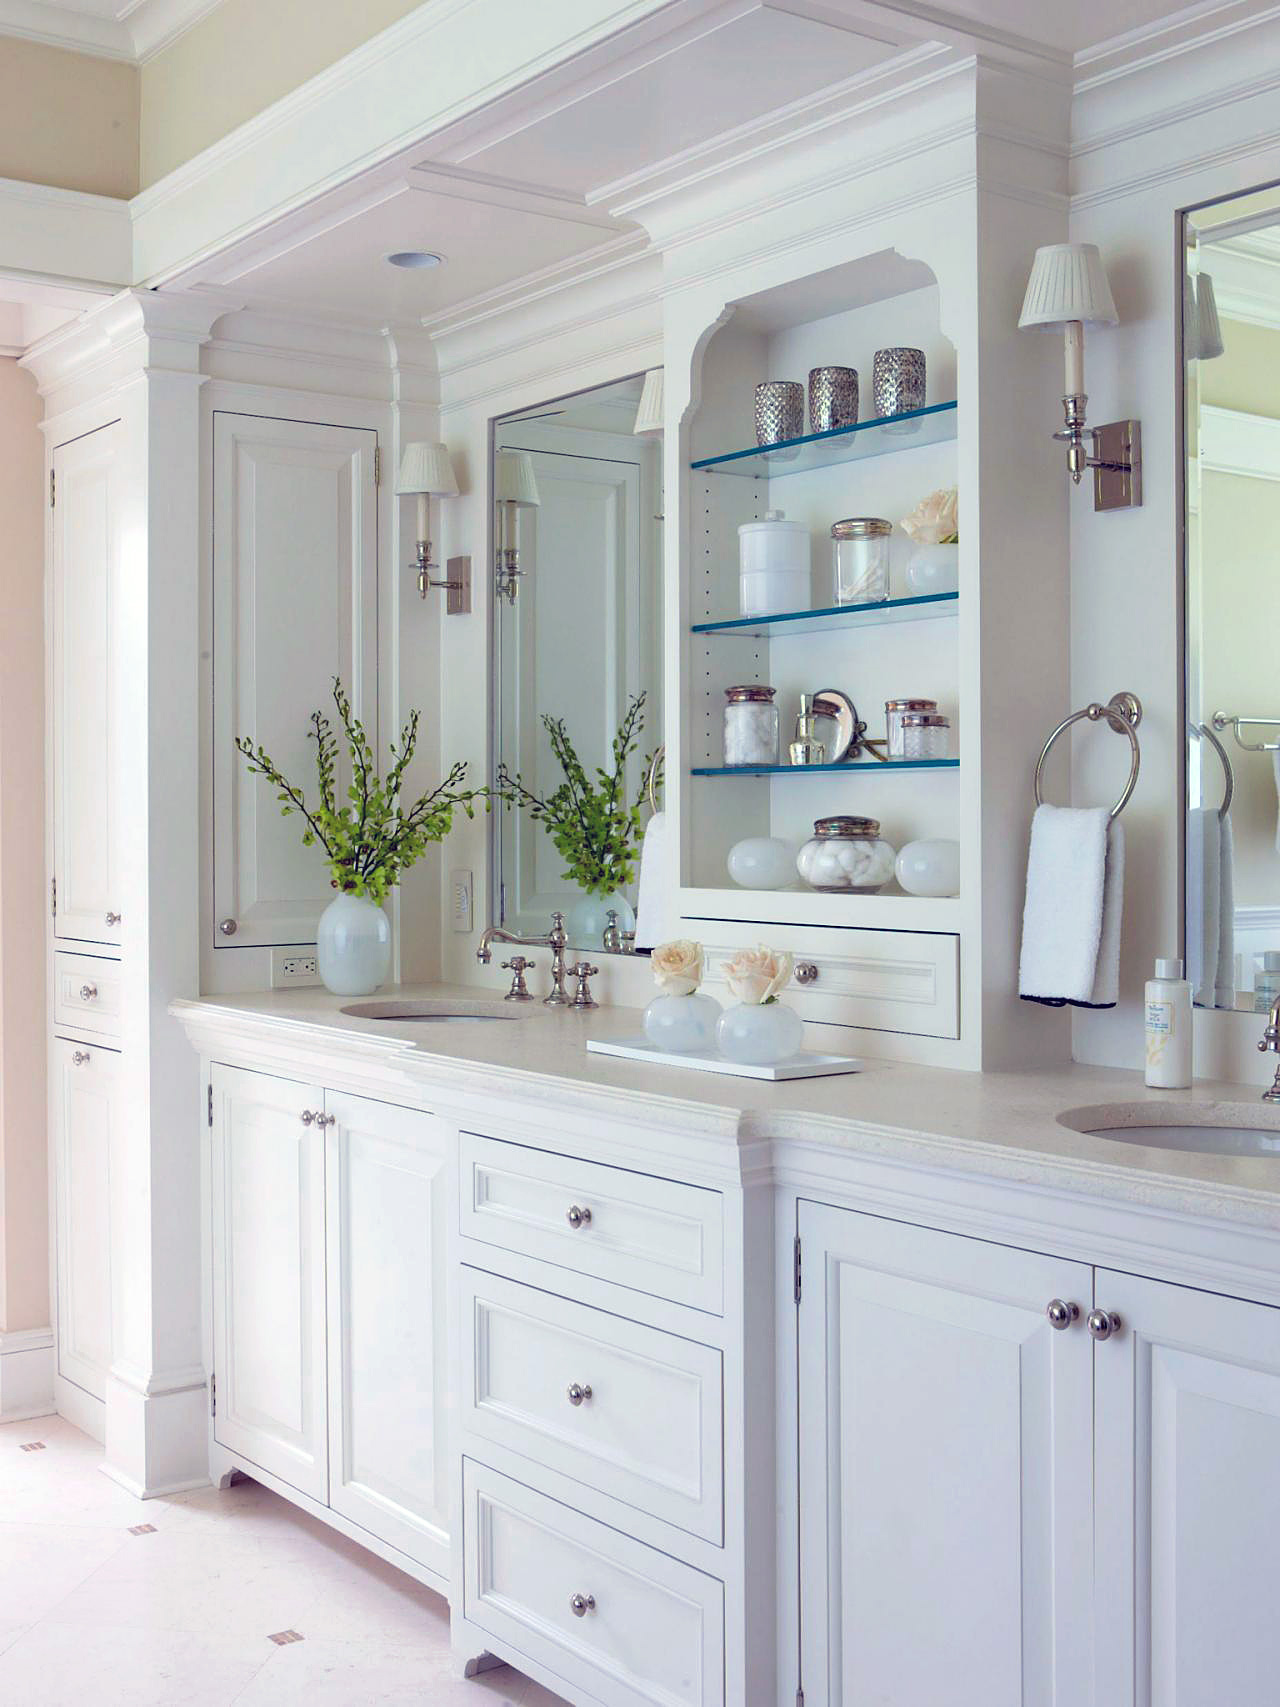 Classic Bathroom Design Creating A Timeless Bathroom Look All You Need To Know